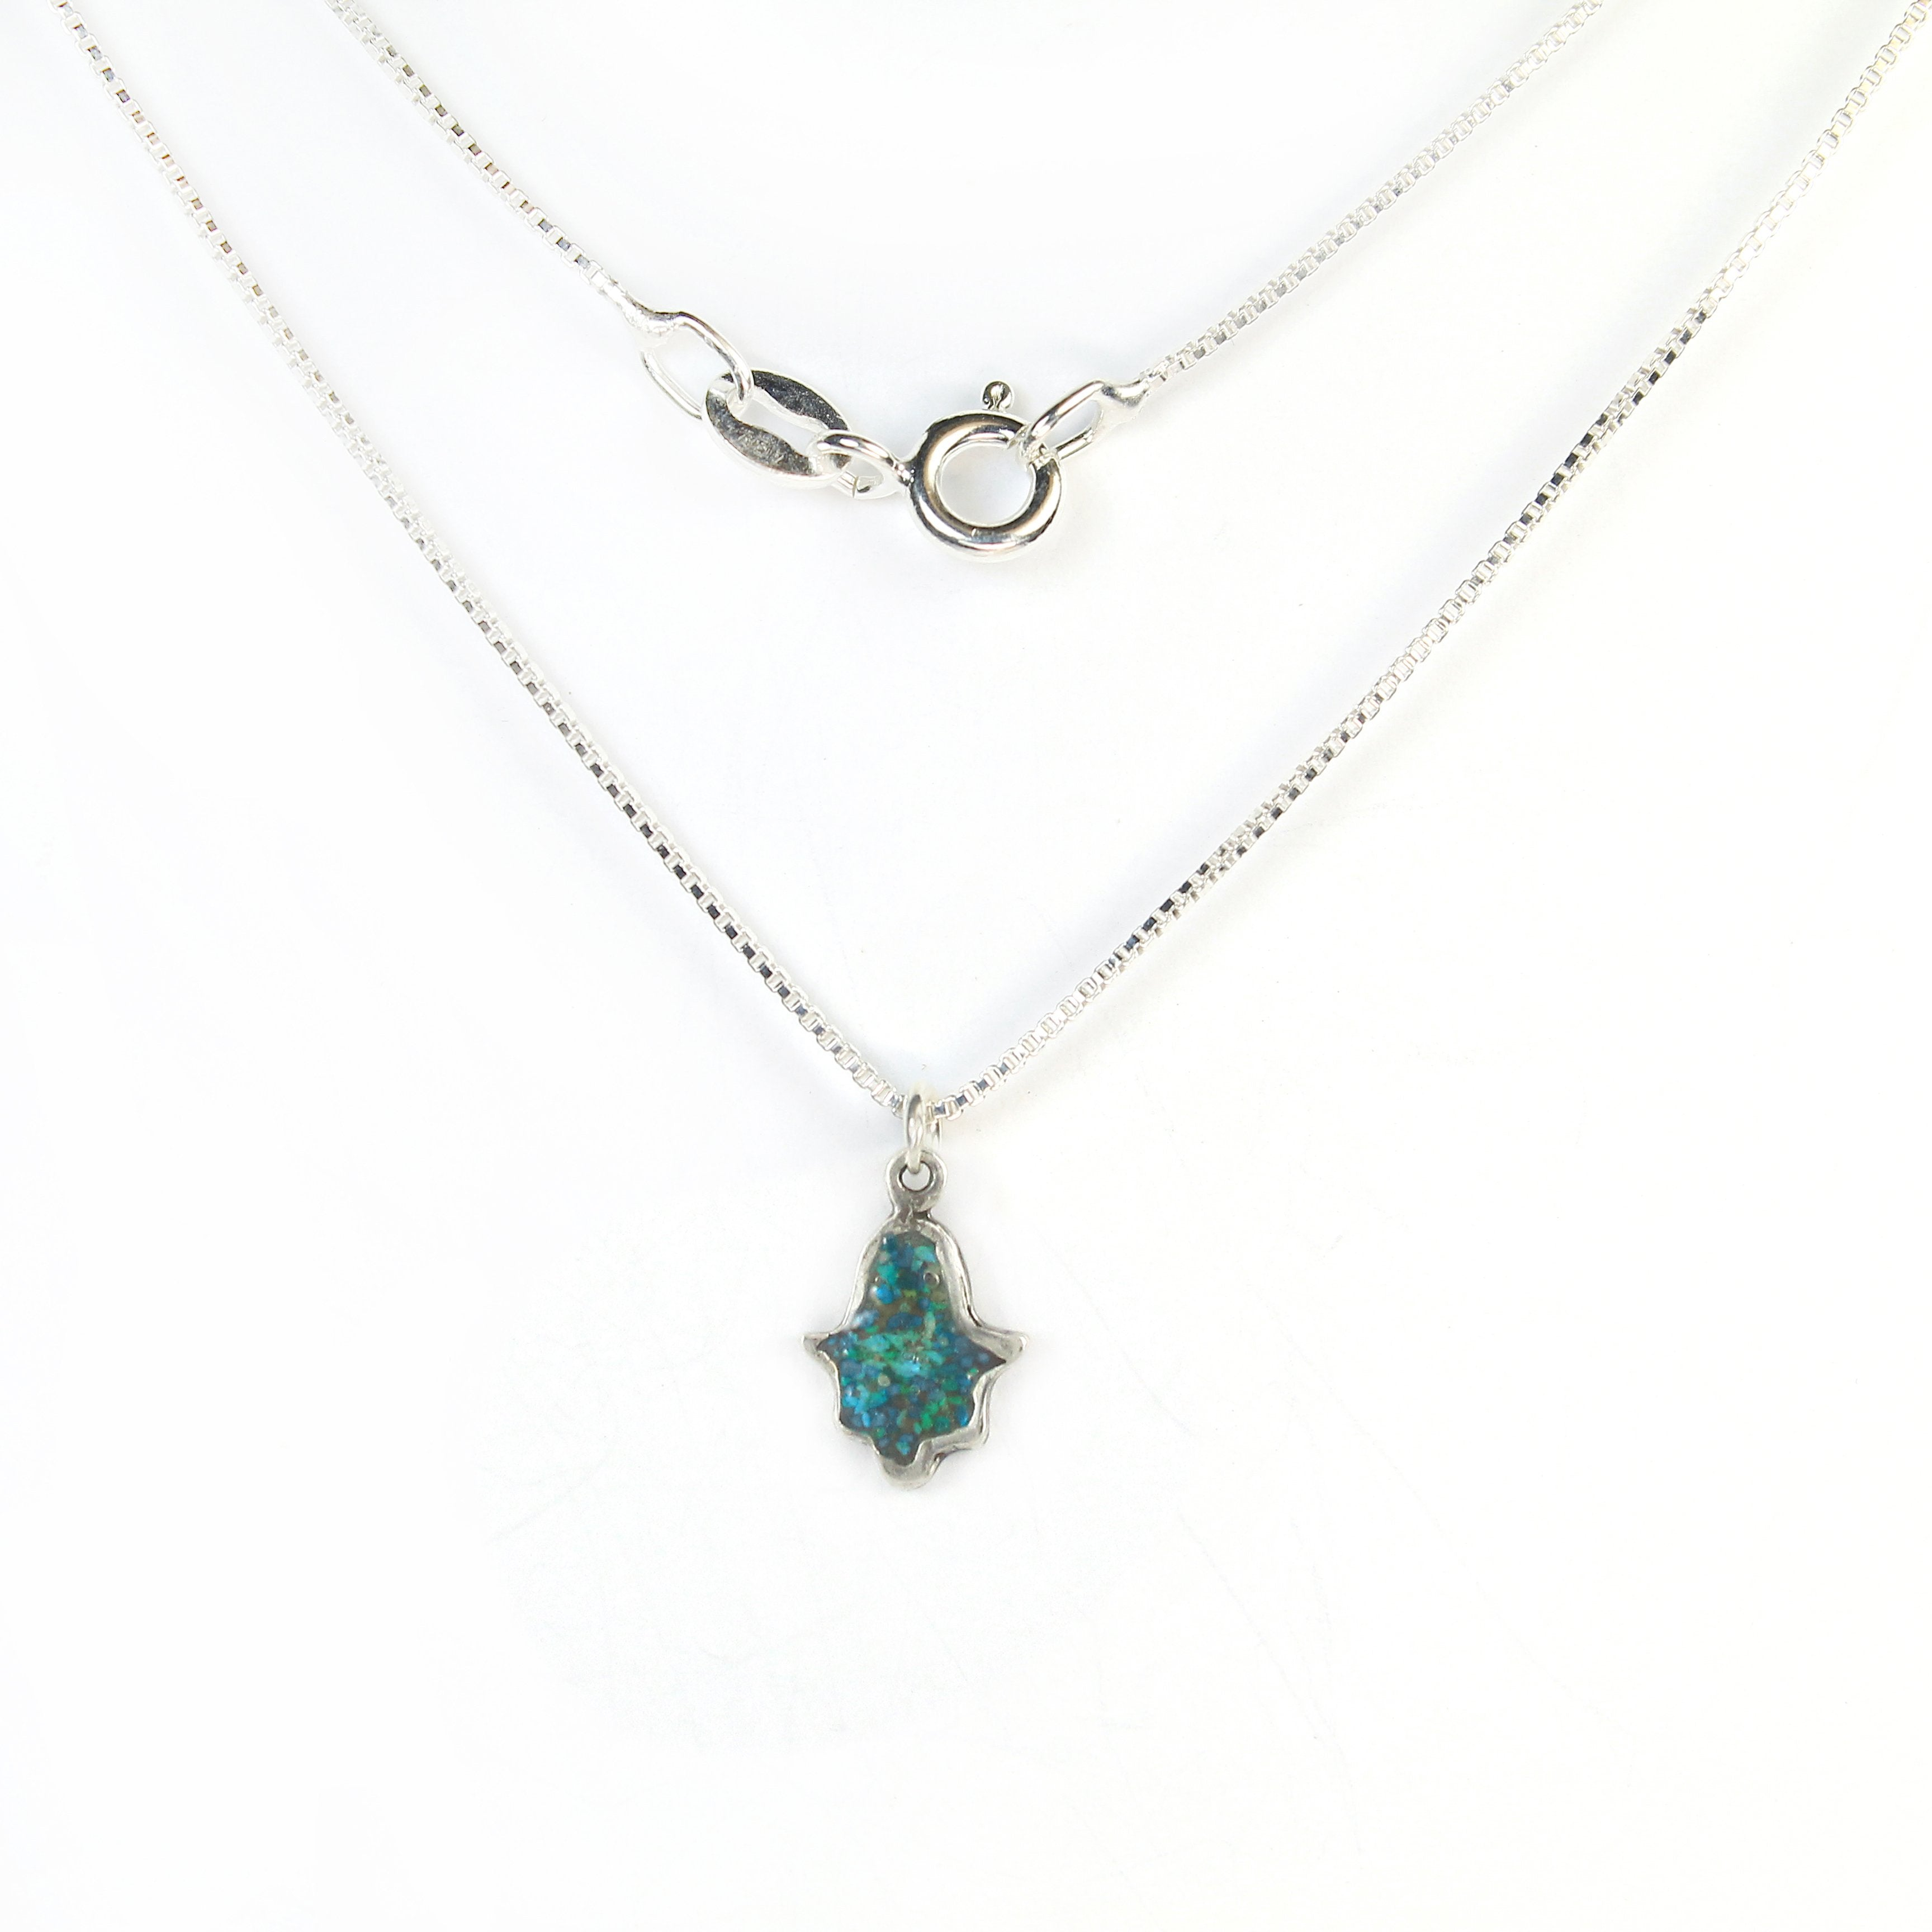 Small Turquoise Hamsa Necklace with stones - Shulamit Kanter